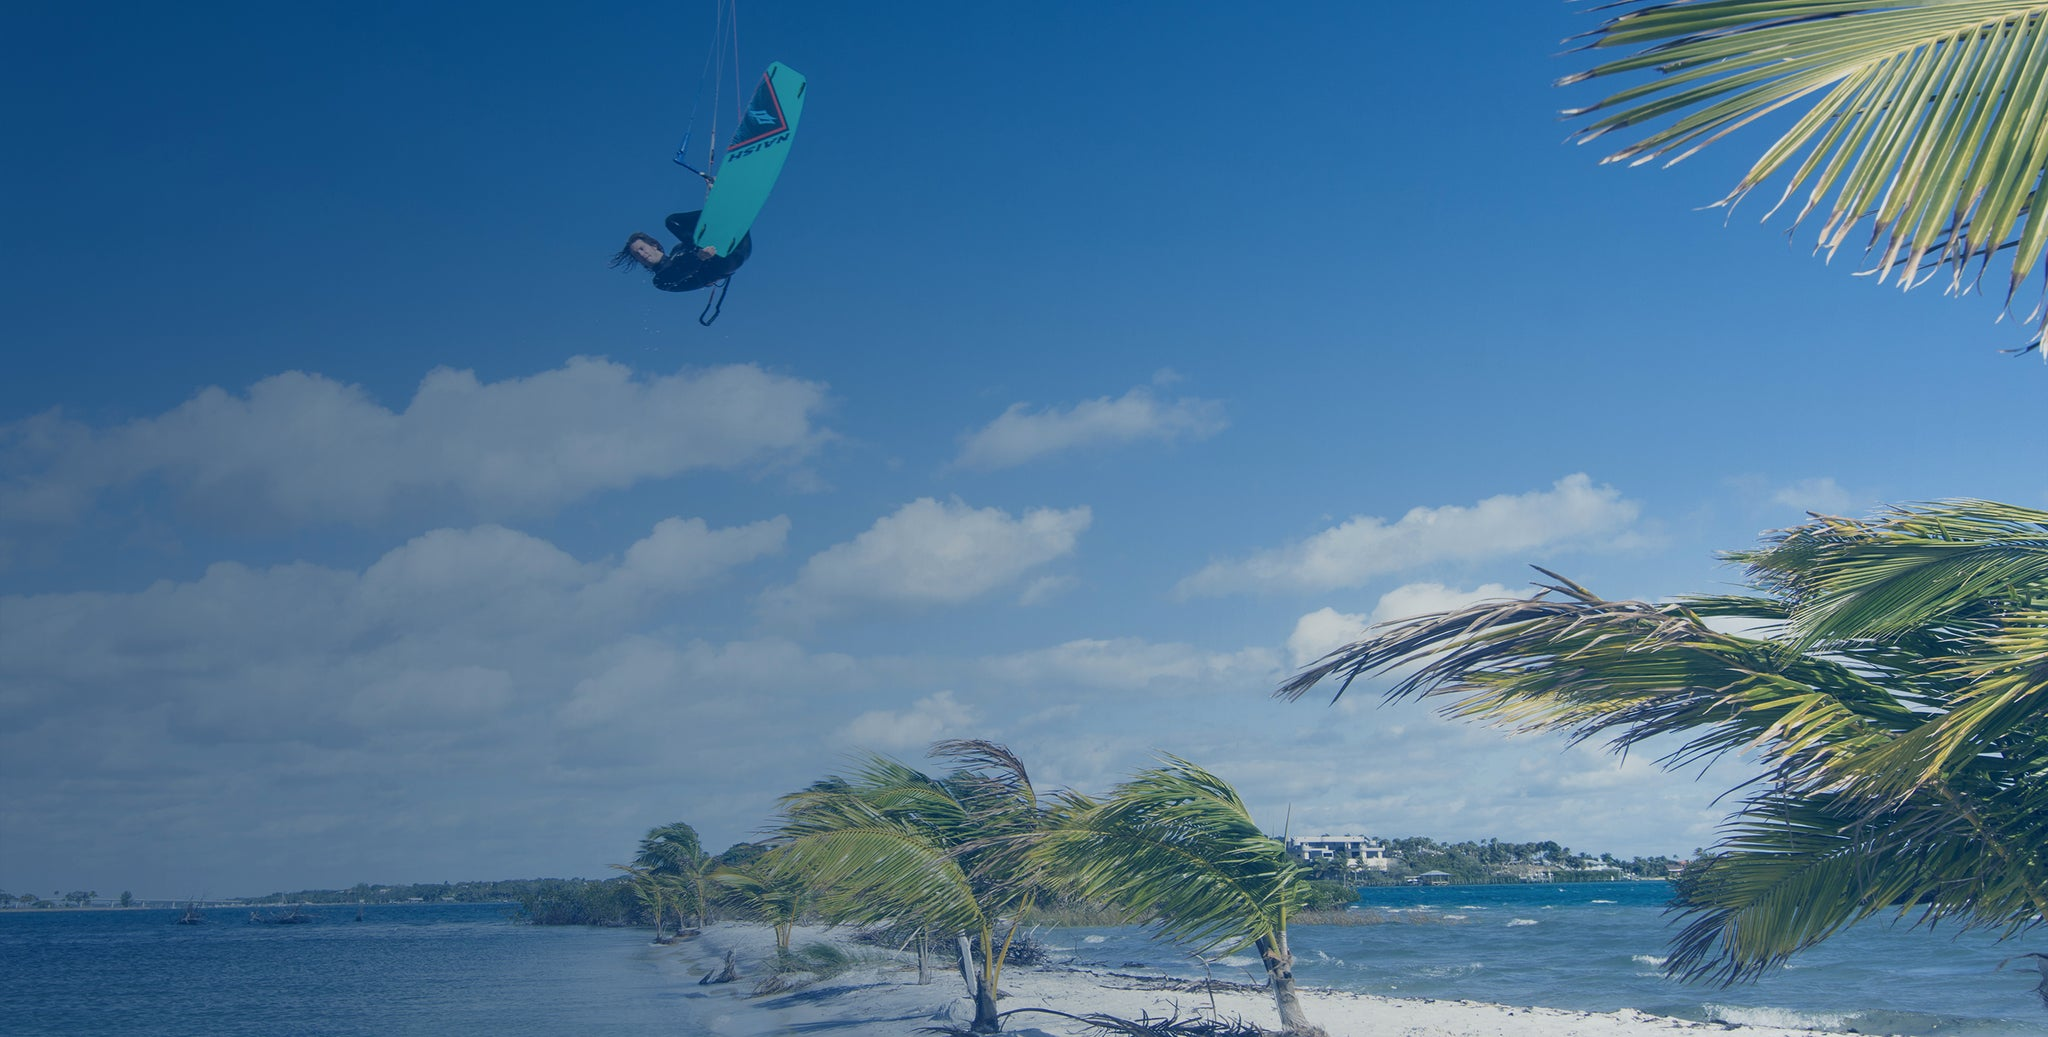 Kiteboarder getting huge air in tropical paradise in Stuart, Florida